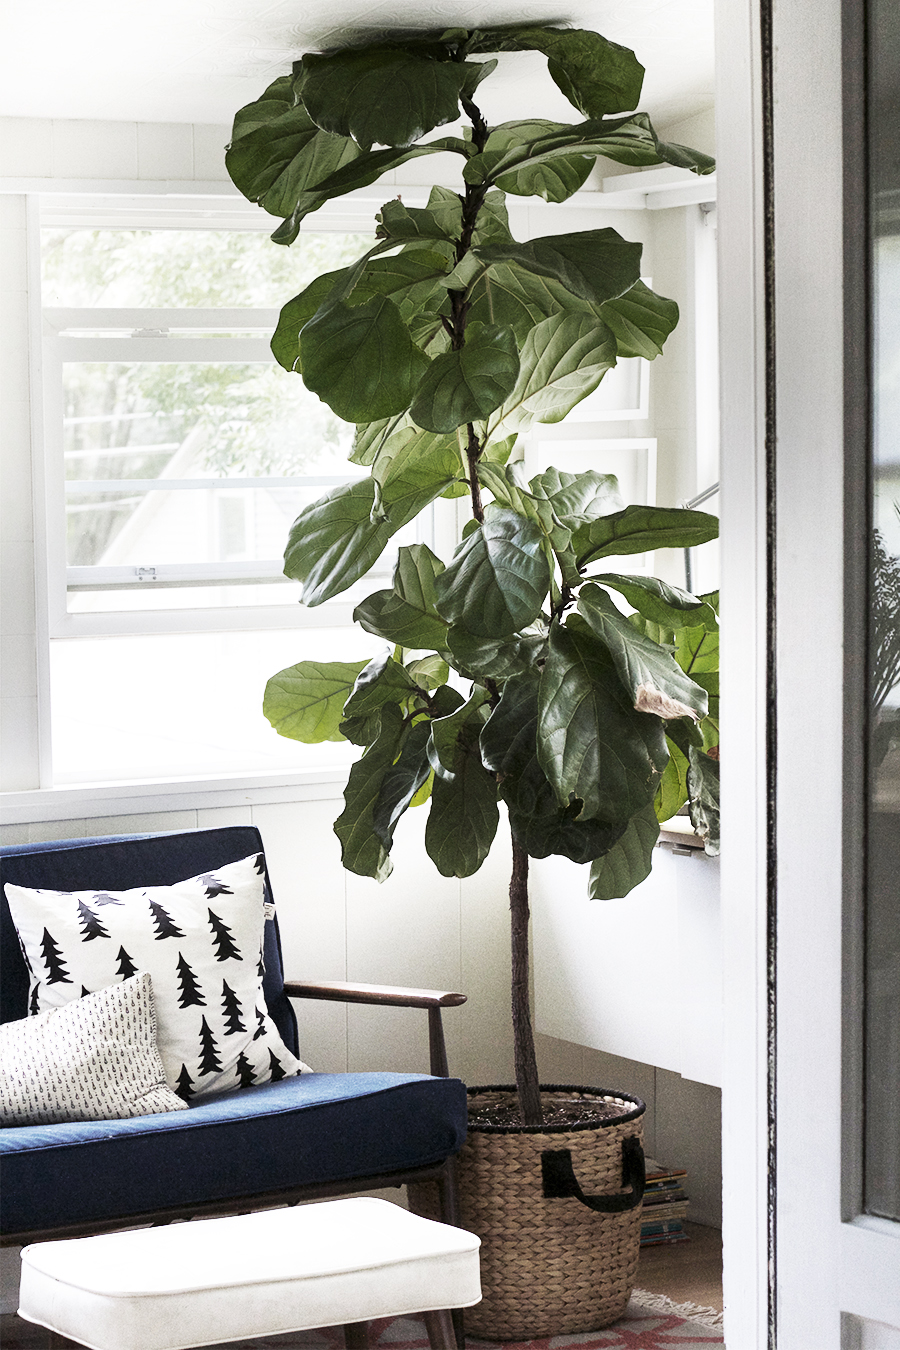 Propagating New Fiddle Leaf Figs